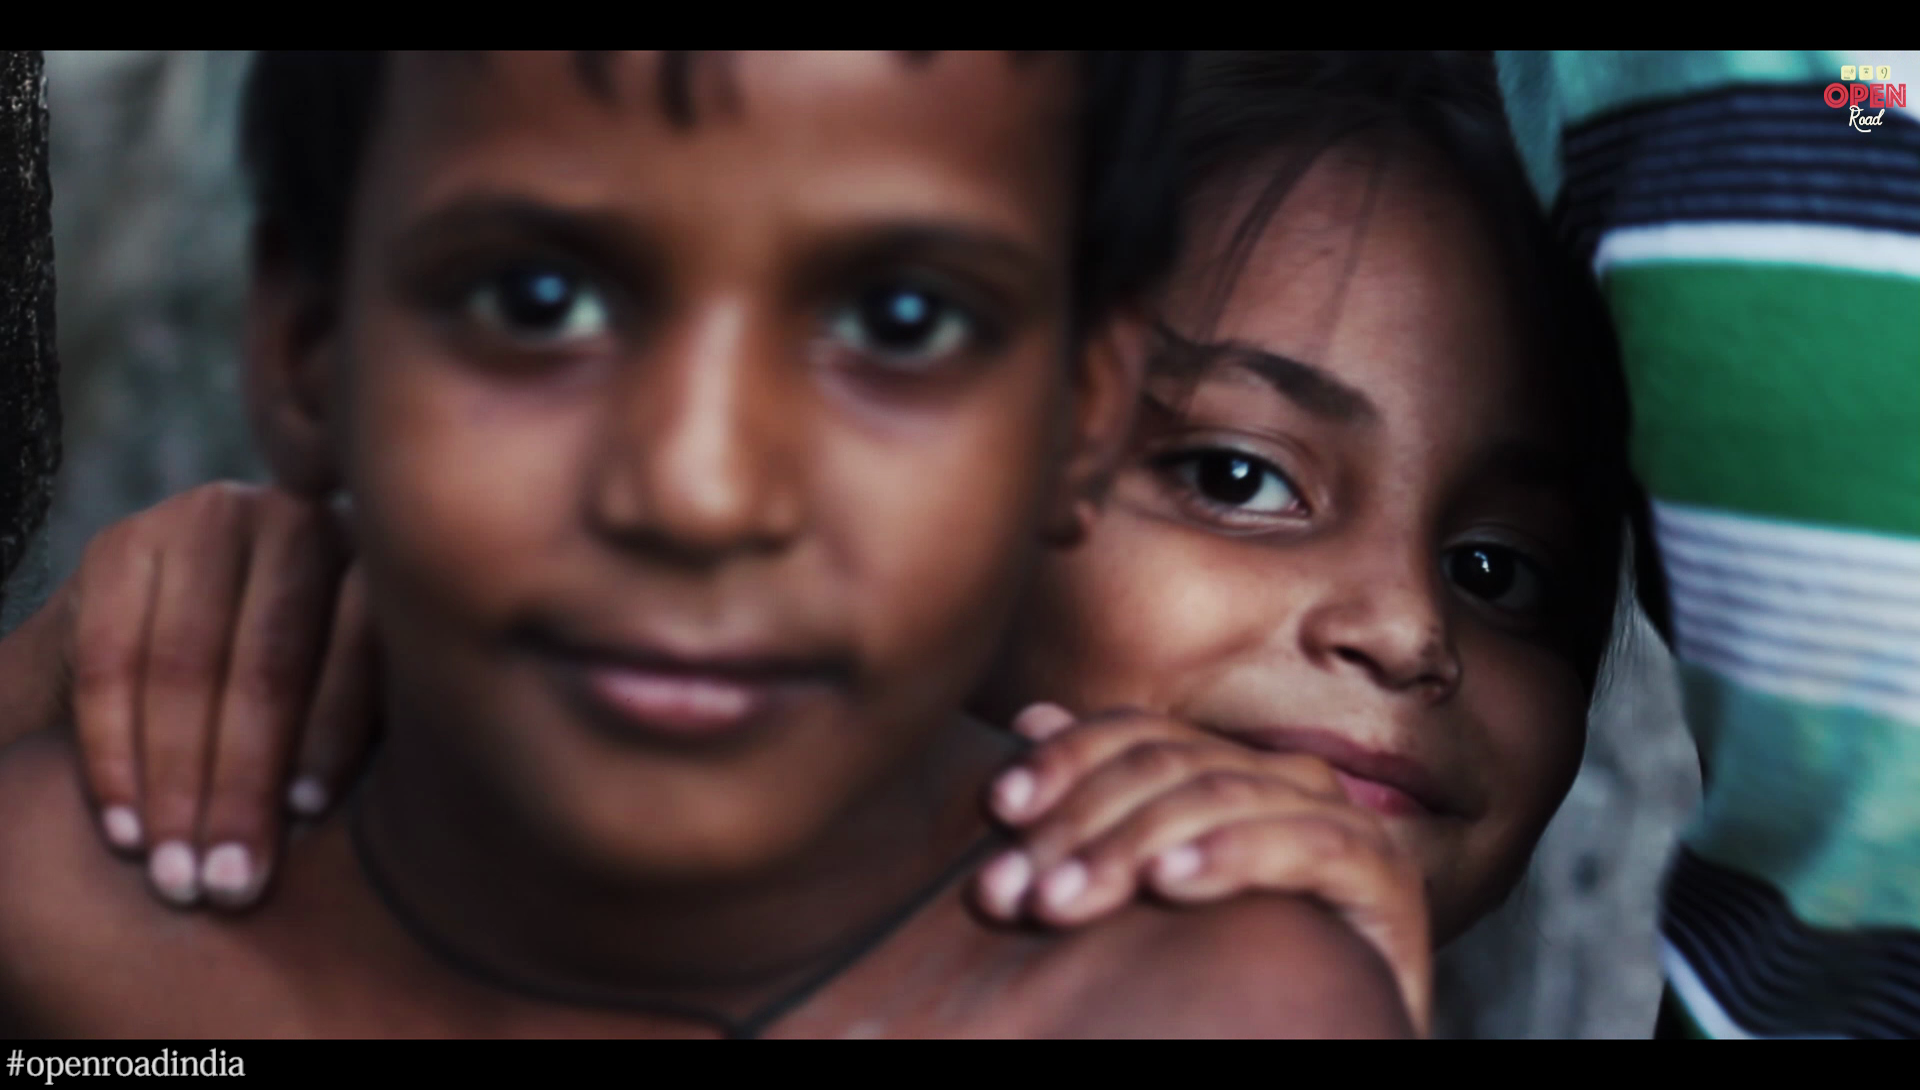 Open Road India – Shot Cuts – 1 – Puppet Colony Kids (Jaipur)